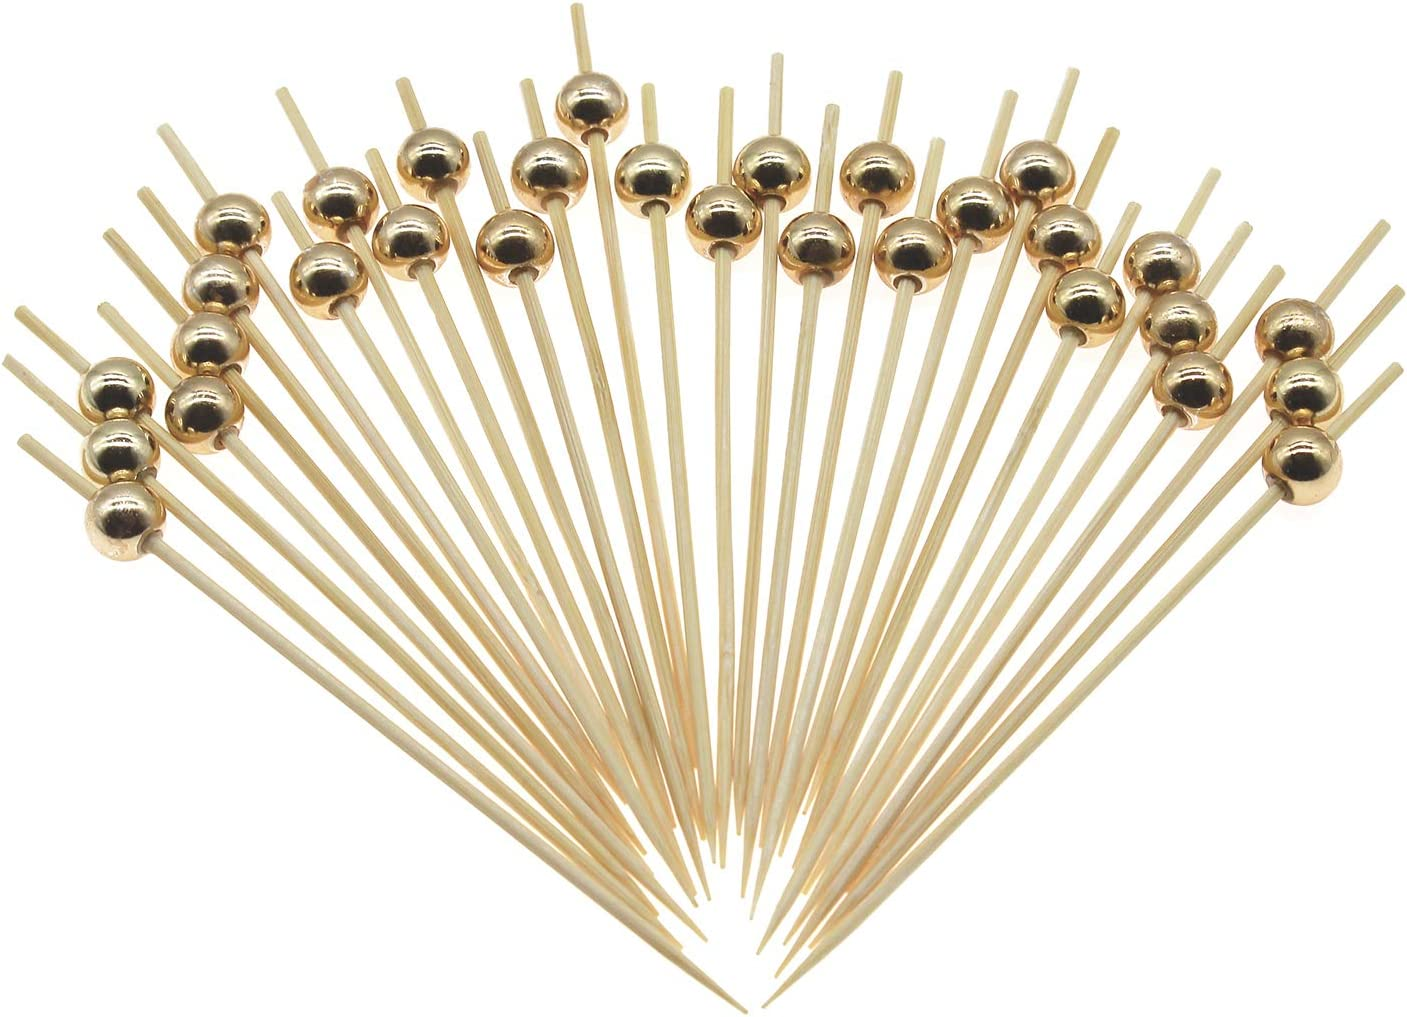 Minisland Bamboo Cocktail Picks 4.7 Inch Long Fancy Toothpicks for Appetizers Drinks Fruits Party Food Garnish Skewer Sticks 100 Counts- Gold Pearl